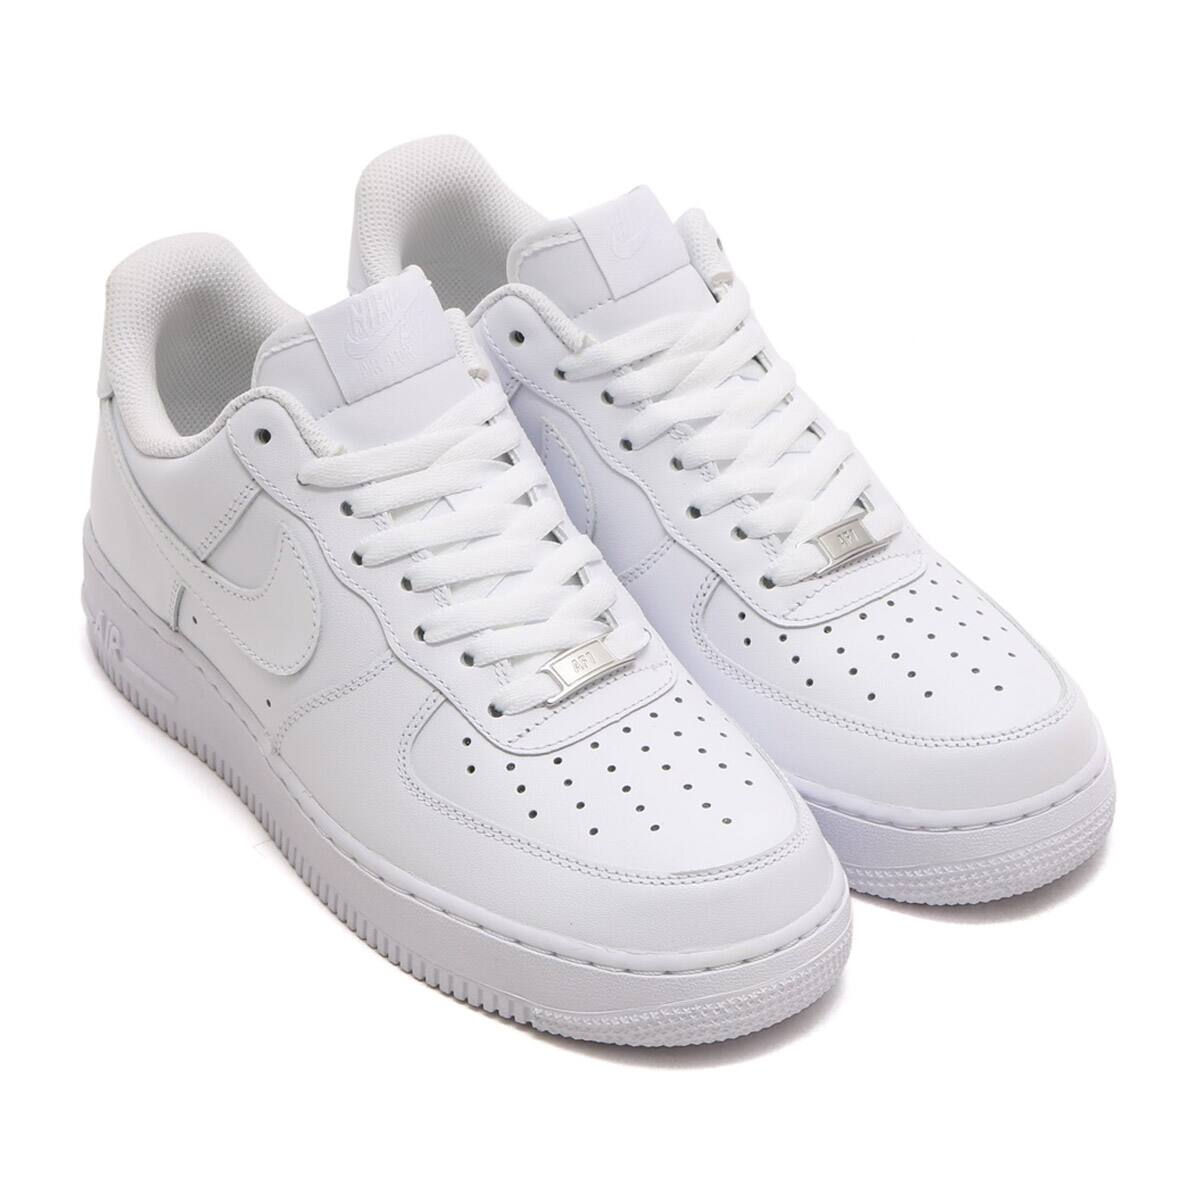 NIKE AIR FORCE 1 '07 WHITE/WHITE 19FA-I_photo_large